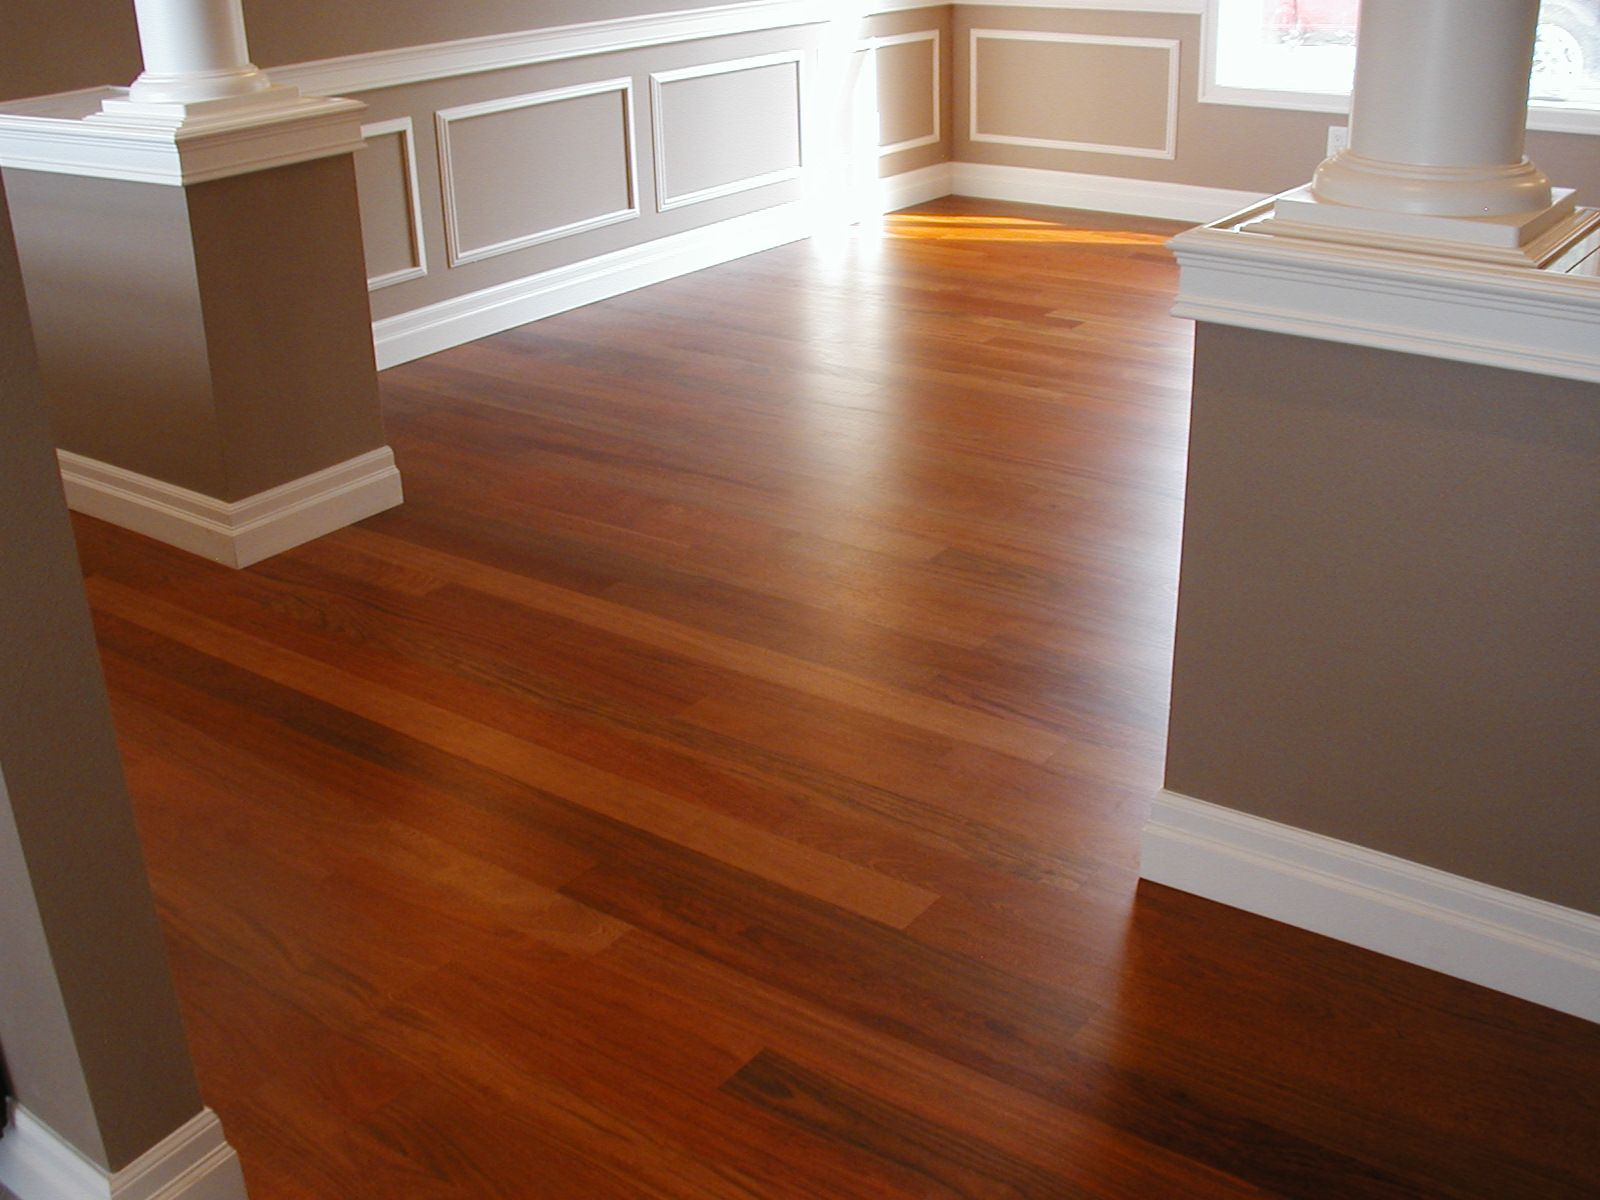 Cherry Hardwood Flooring patagonian cherry hardwood floors patagonian cherry hardwood Brazilian Cherry Floors In Kitchen Help Choosing Harwood Floor Color Laminate Hardwood